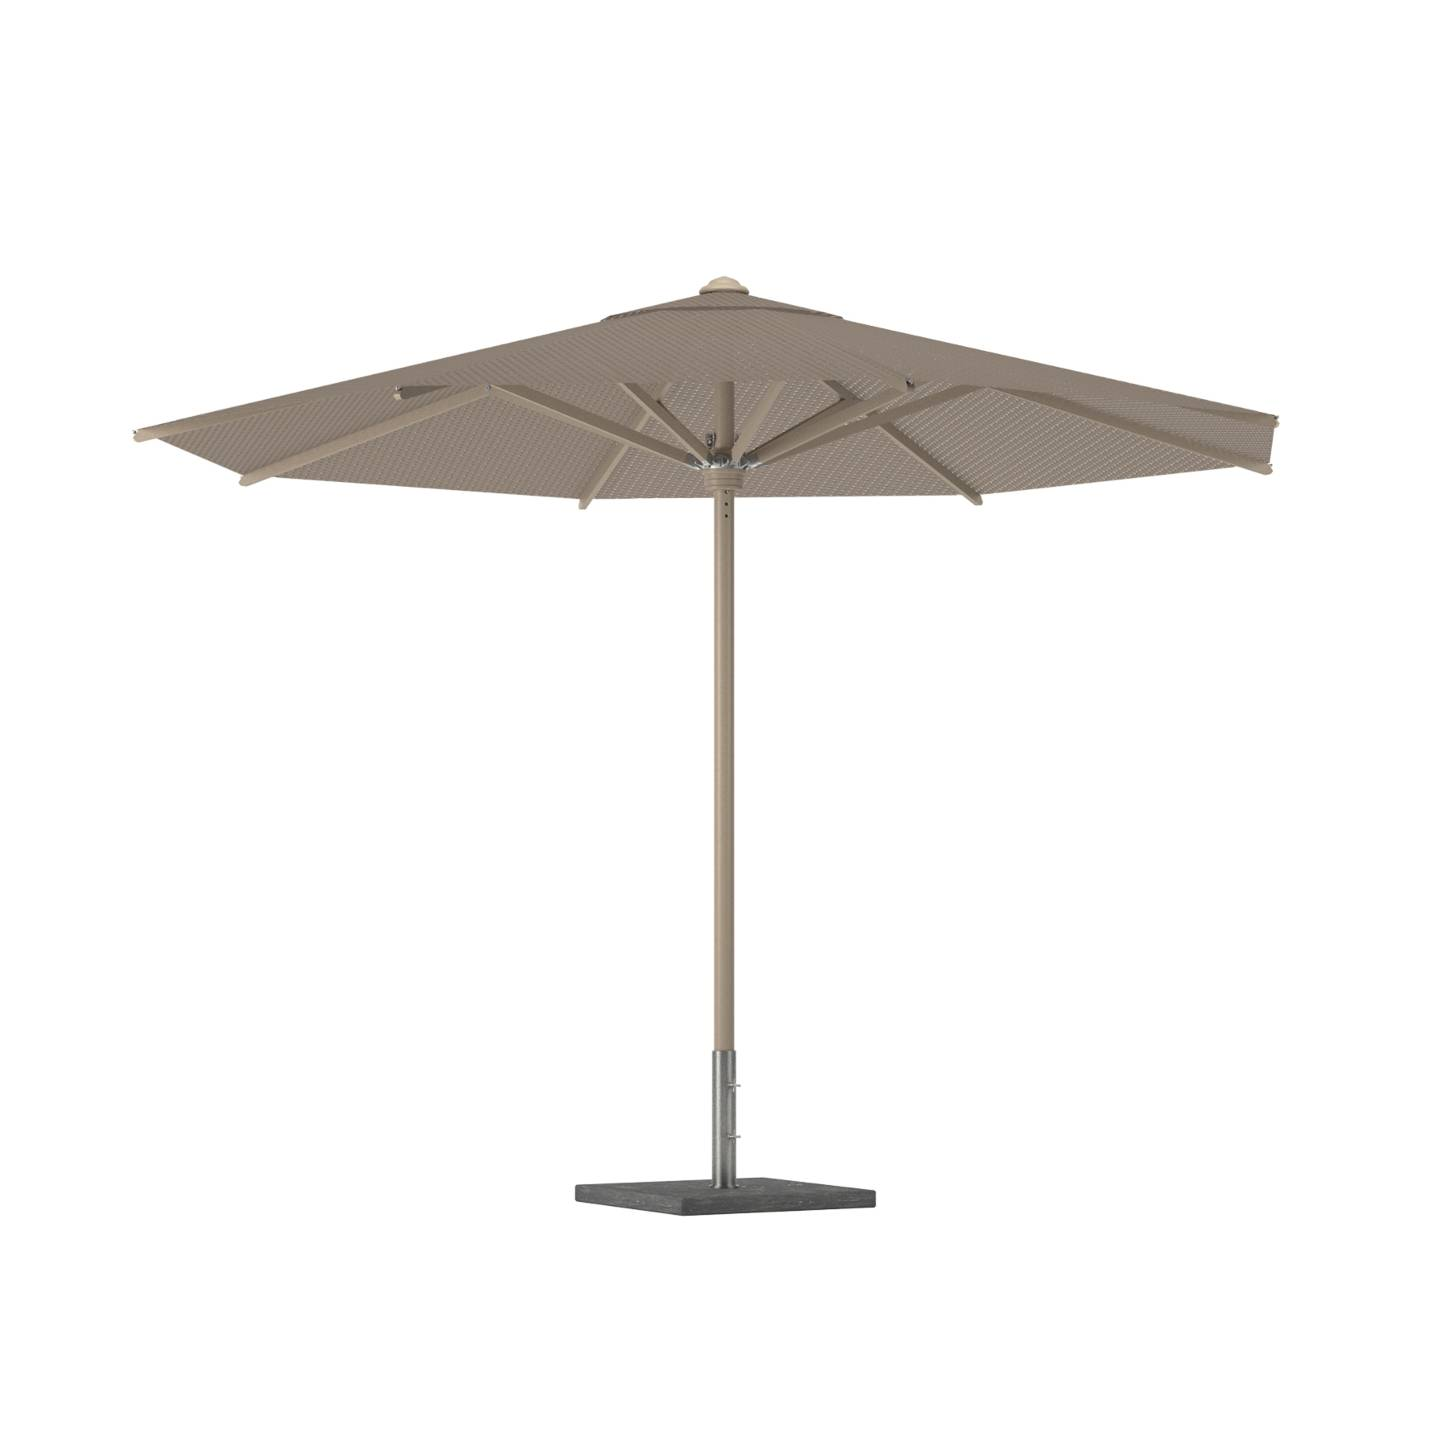 ROYA BOTANIA Shady Alu Umbrella 2